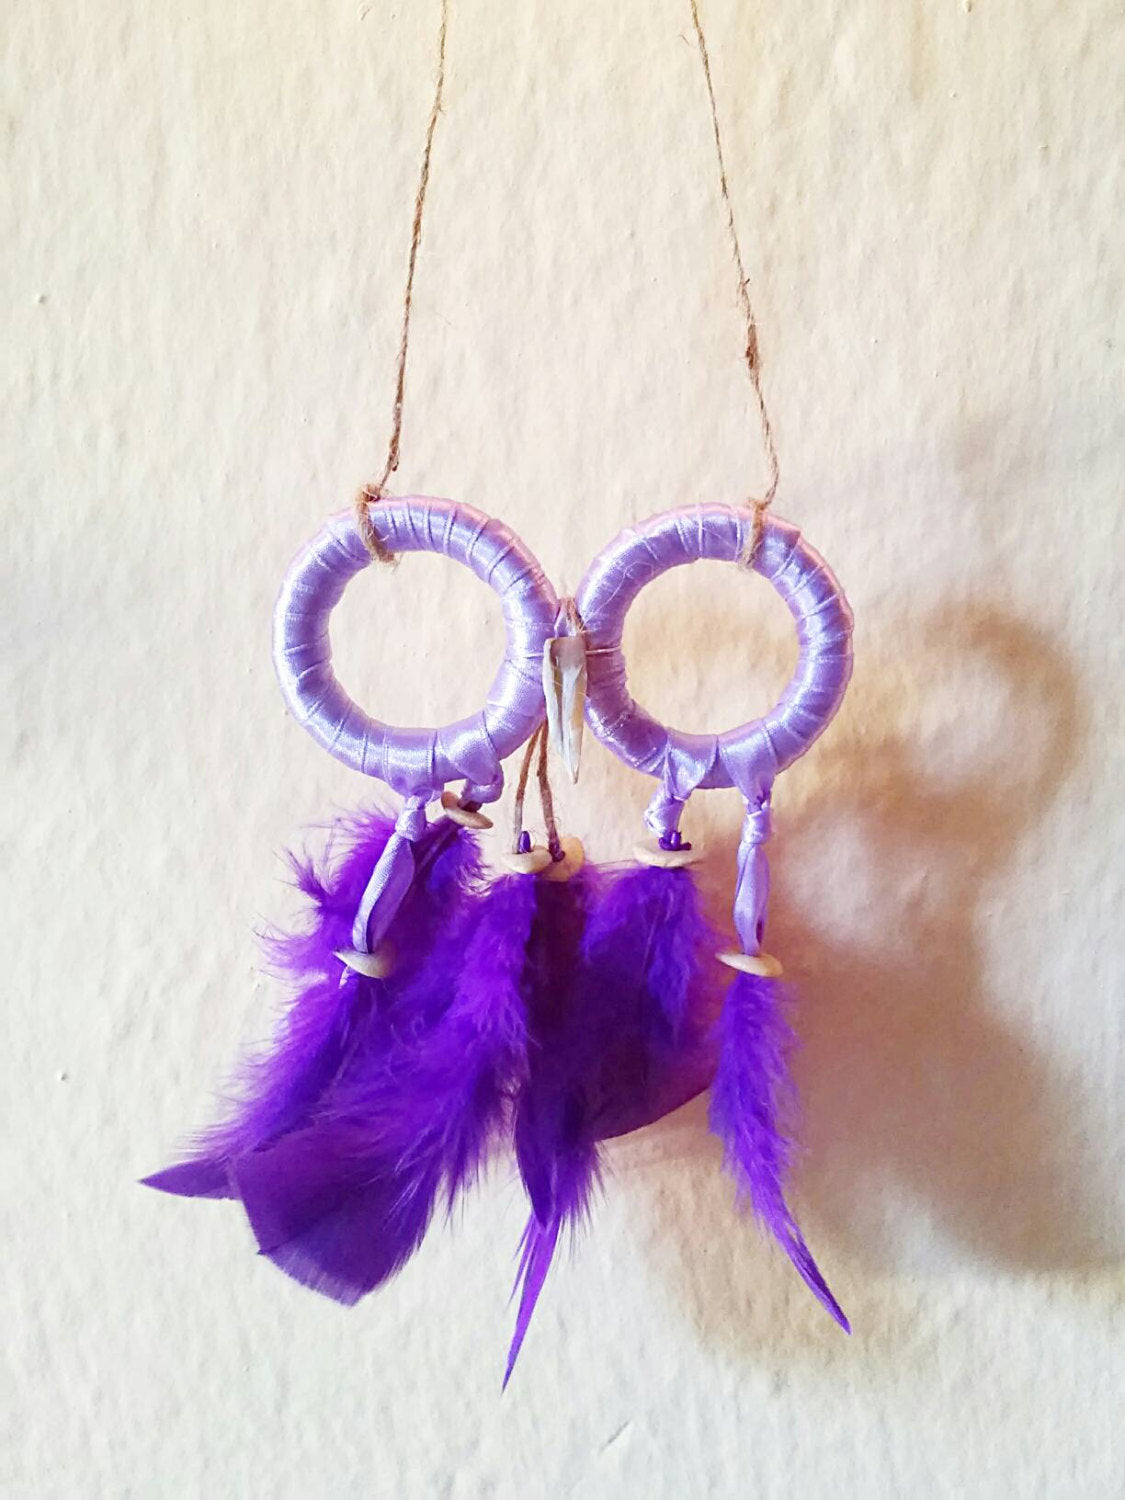 Purple owl dream catcher, small owl dreamcatcher, boho purple owl dream catcher, hippie owl dreamcatcher, boho wall owl decor, wall decor